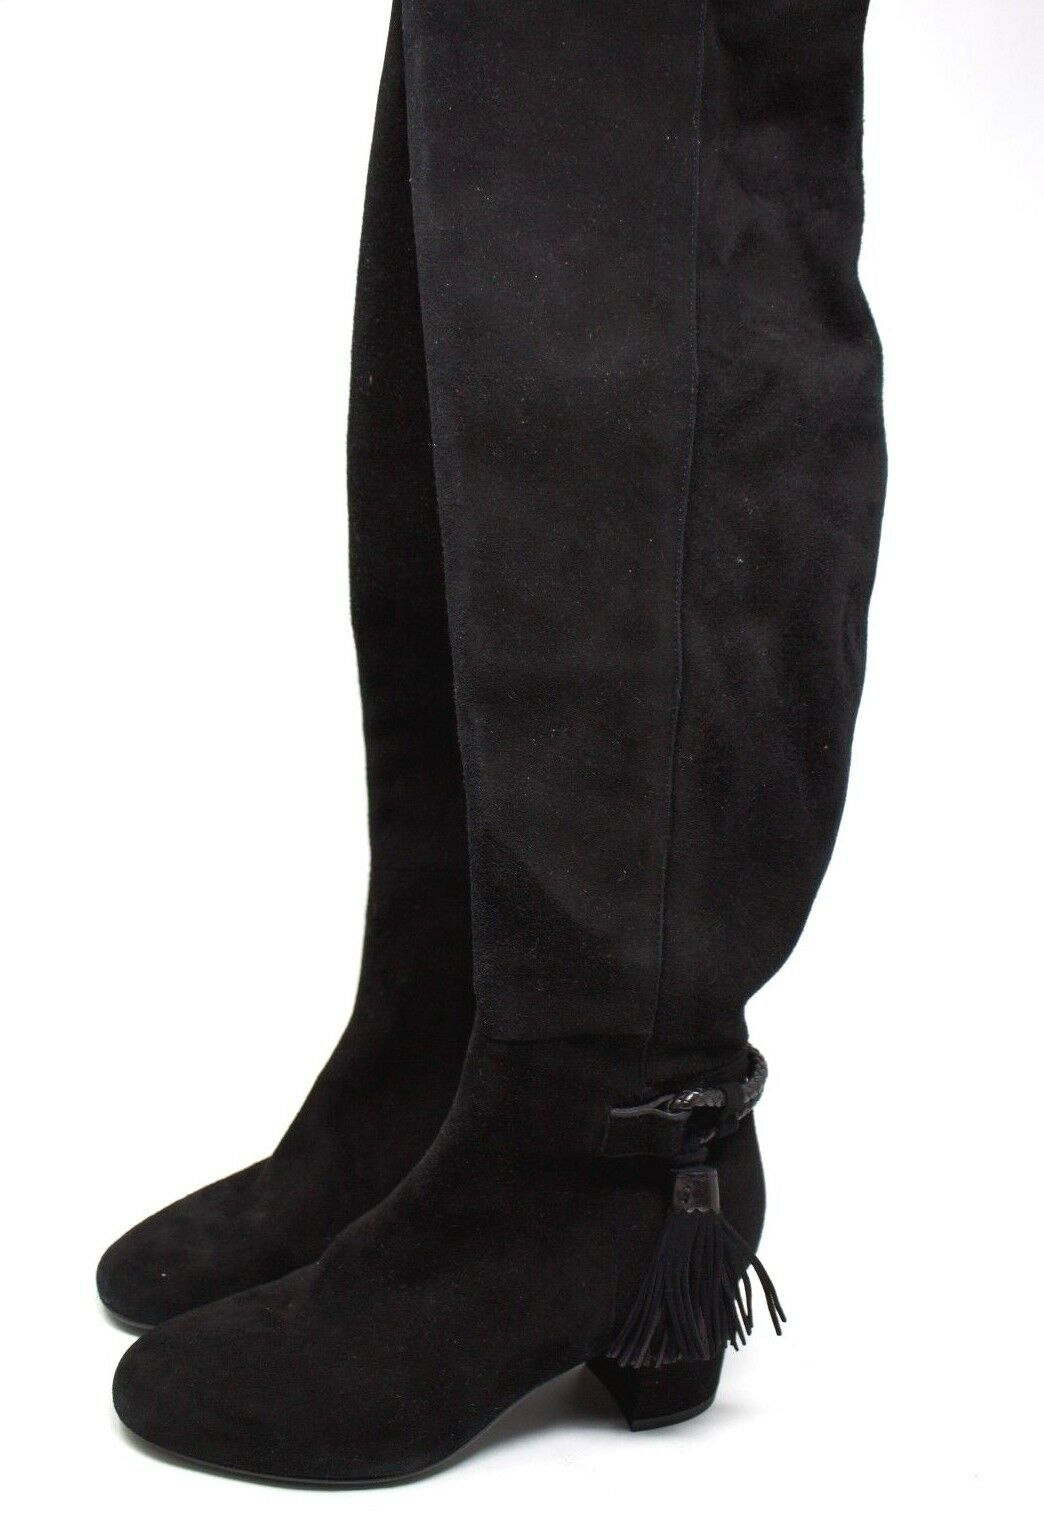 L.K. Bennett  London Black Color Solid  Suede Pompom Tall Boots  Women Size 35